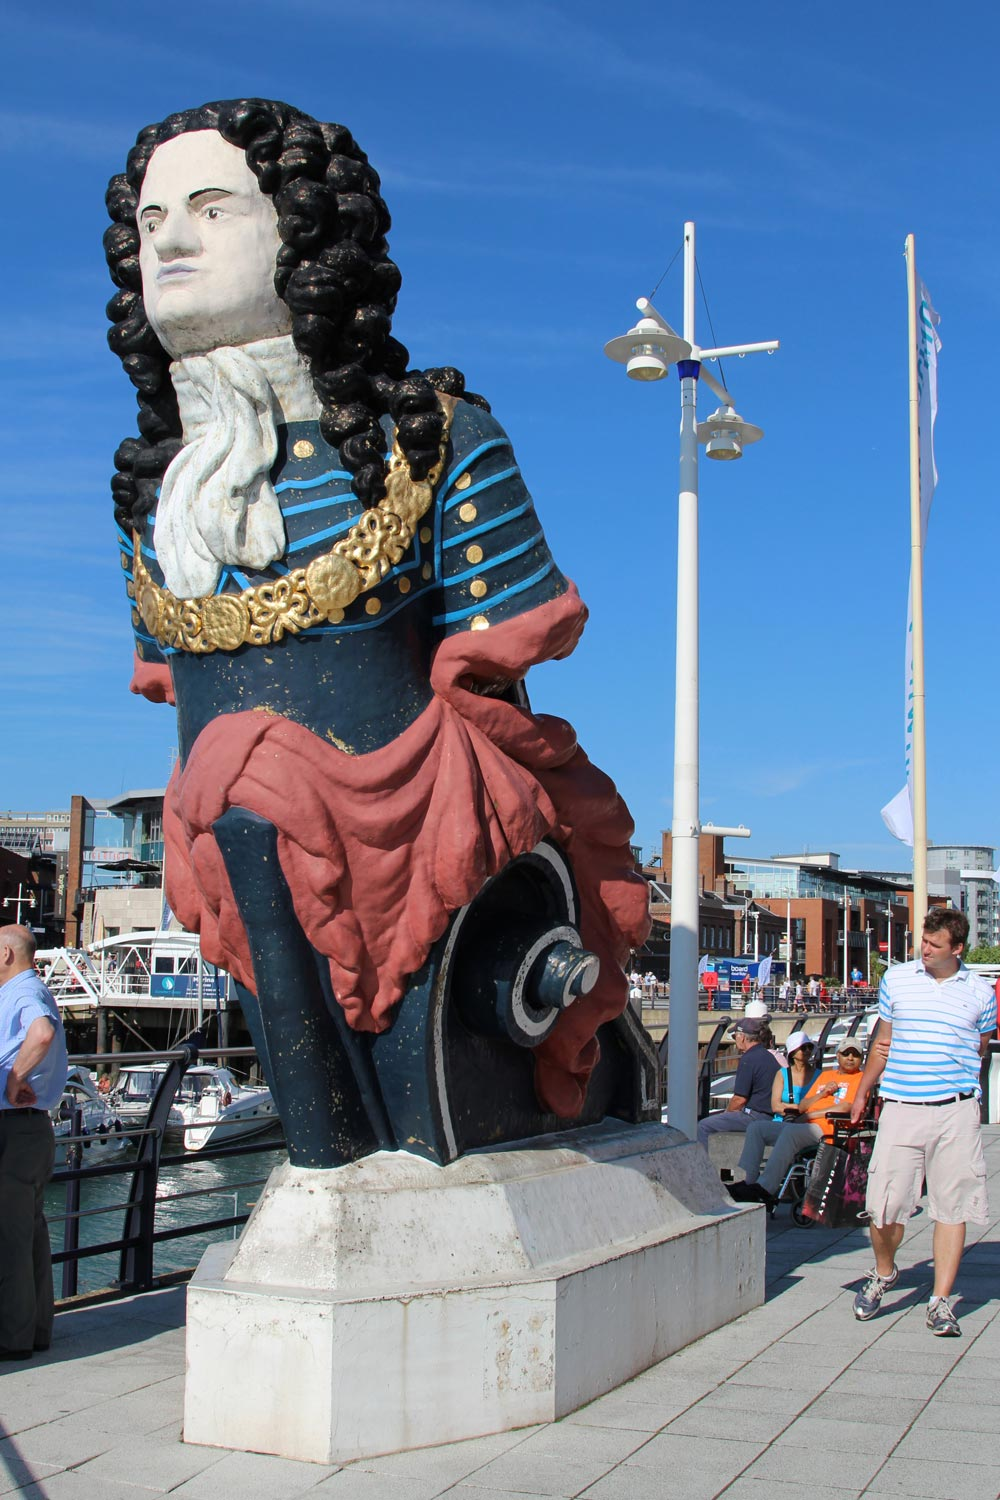 HMS Marlborough figurehead at Gunwharf Quays (formerly HMS VERNON)